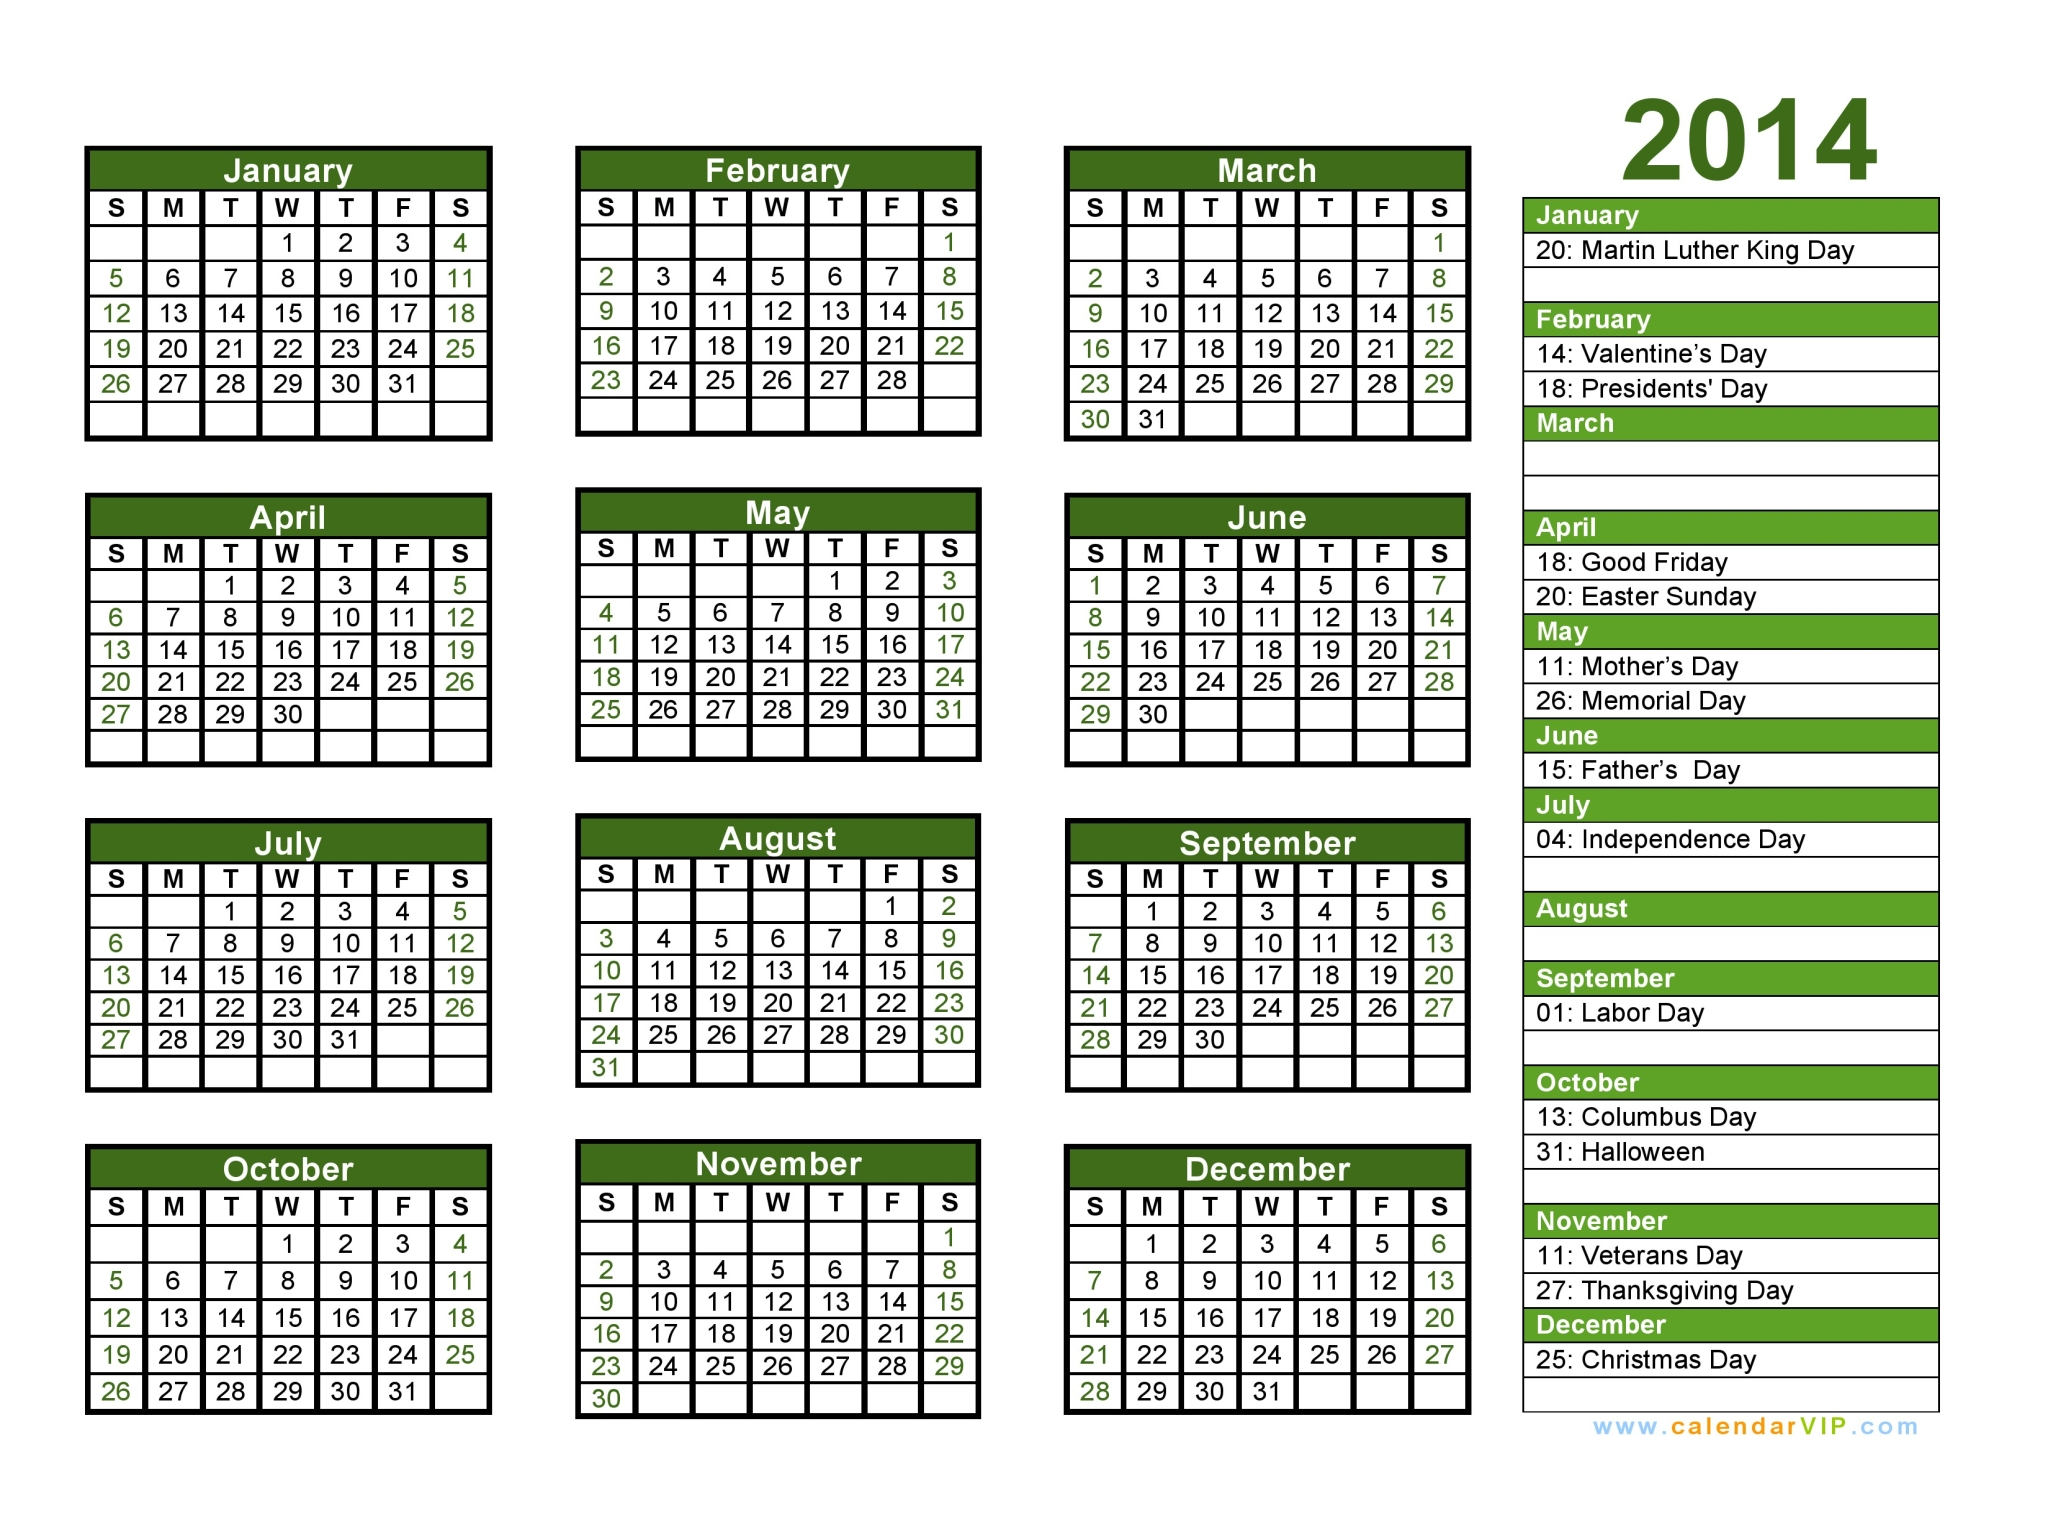 Pretty 100 Free Resume Builder Thick 1099 Template Excel Shaped 15 Year Old Resume Sample 2 Page Resume Design Old 2014 Calendar Template Monthly Pink2015 Calendar Planner Template 2014 Calendar   Blank Printable Calendar Template In PDF Word Excel